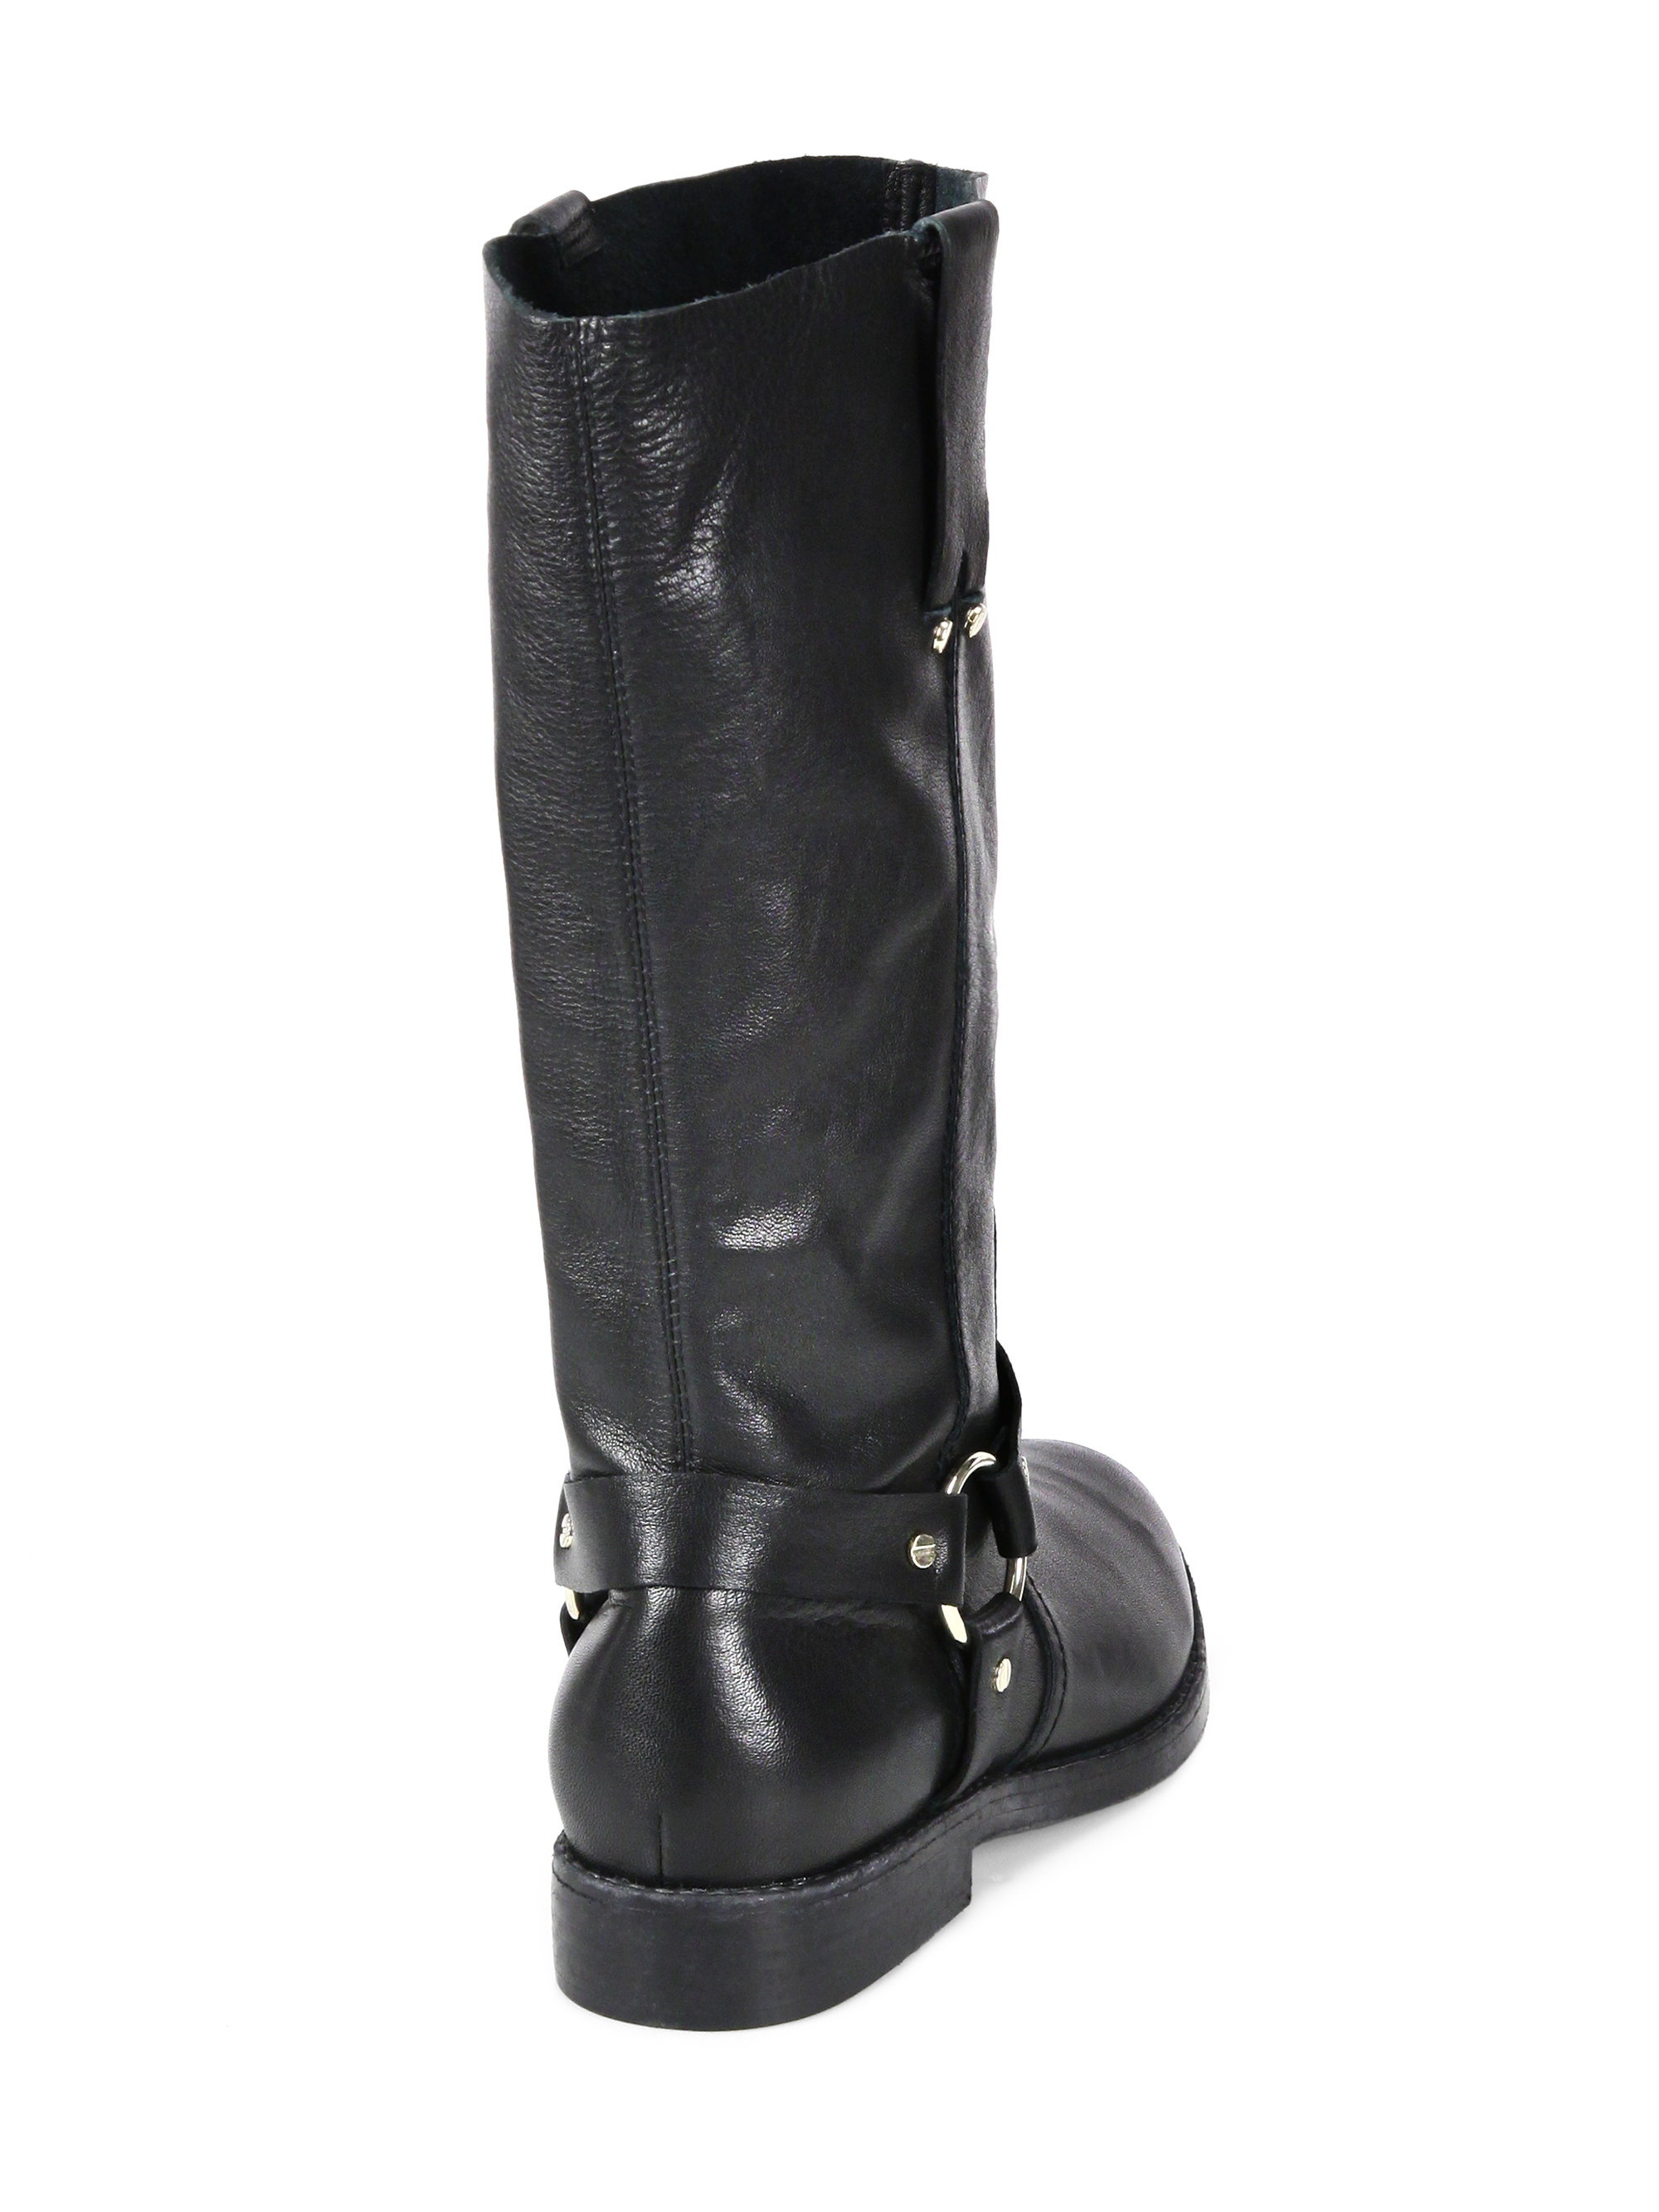 convenience goods another chance pre order Joie Black Babson Leather Kneehigh Moto Boots